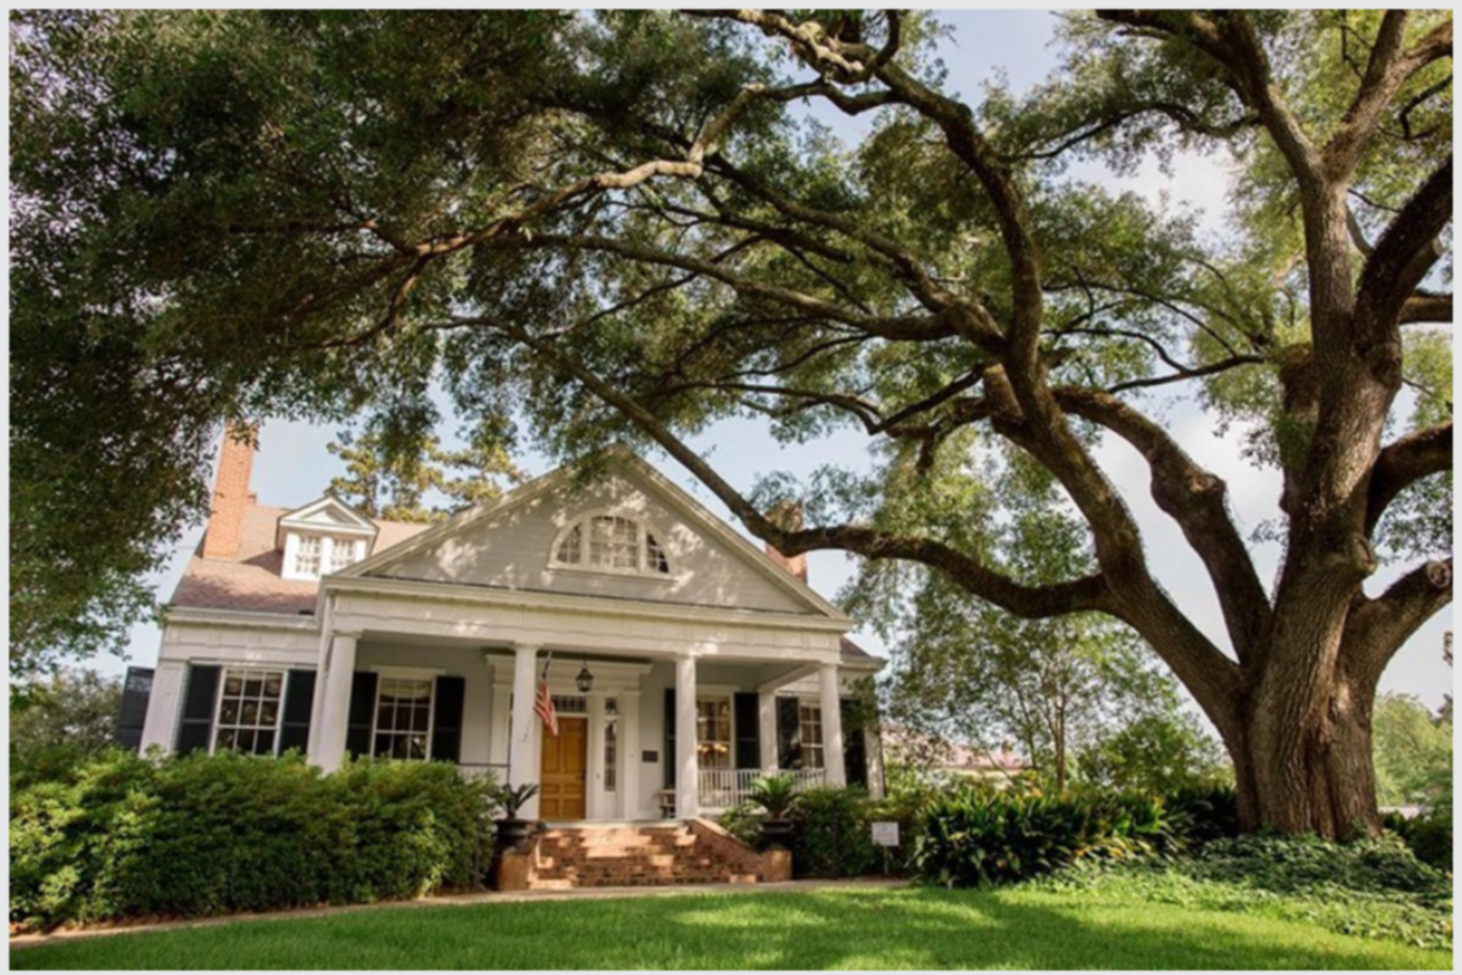 A large tree in front of a house at The Burn Antebellum Bed & Breakfast Inn.